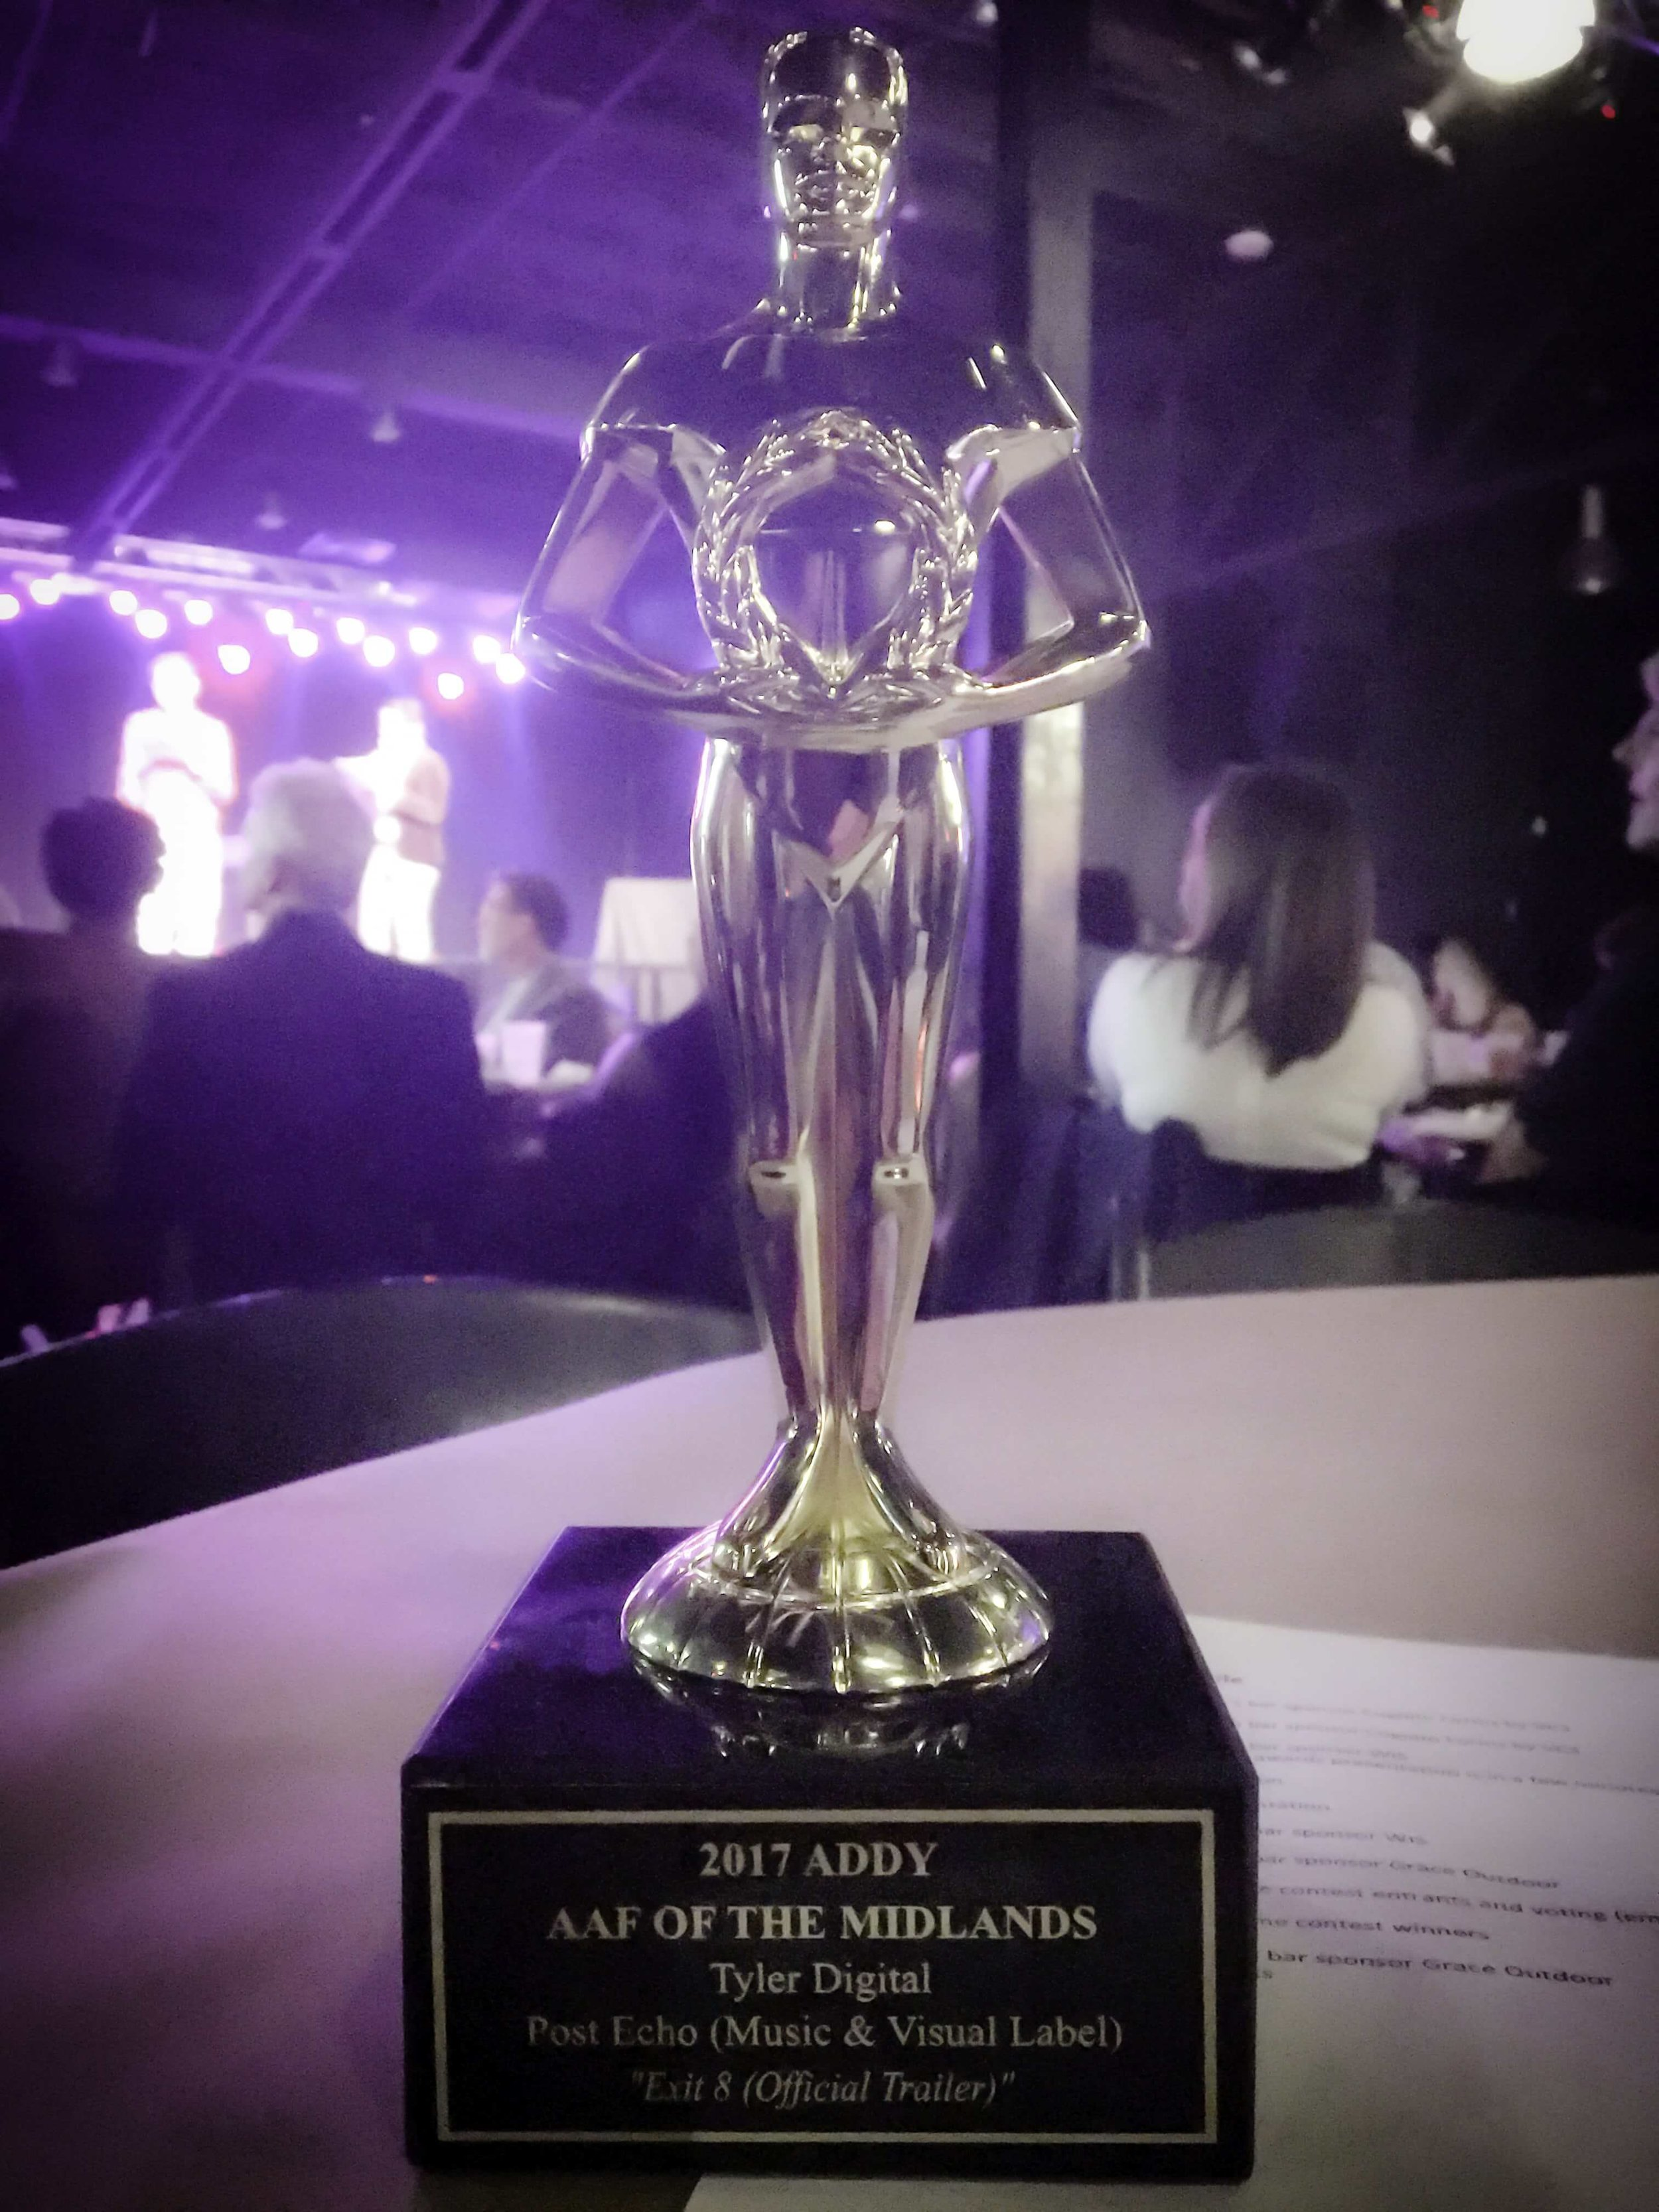 American Advertising Awards — Gold Award - Elements of Advertising - Original Music Composition, Exit 8 Trailer